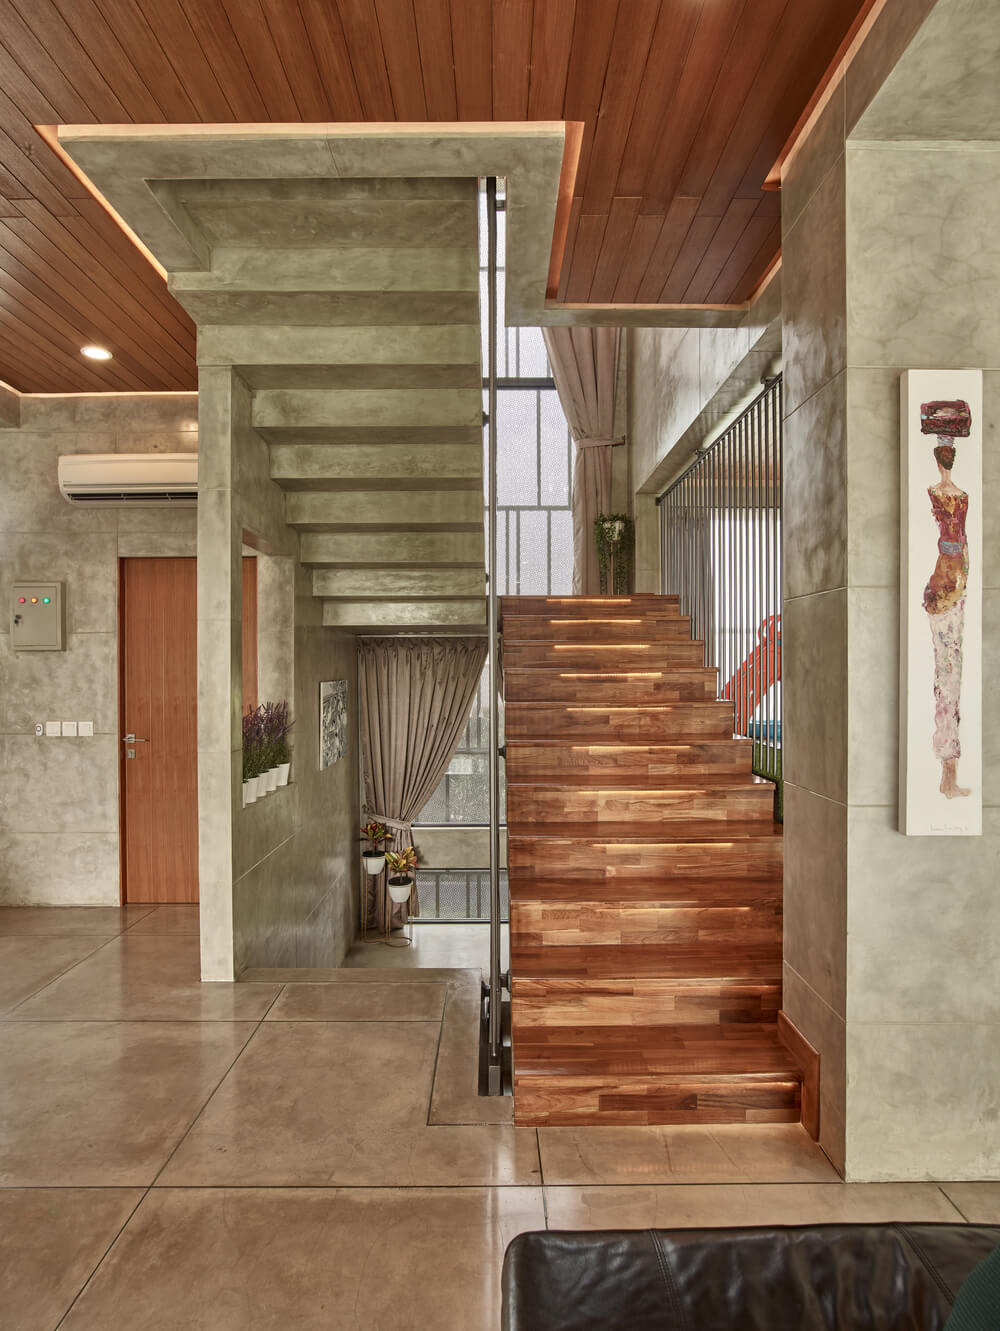 This is a view of the staircase from the vantage of the living room sofa.